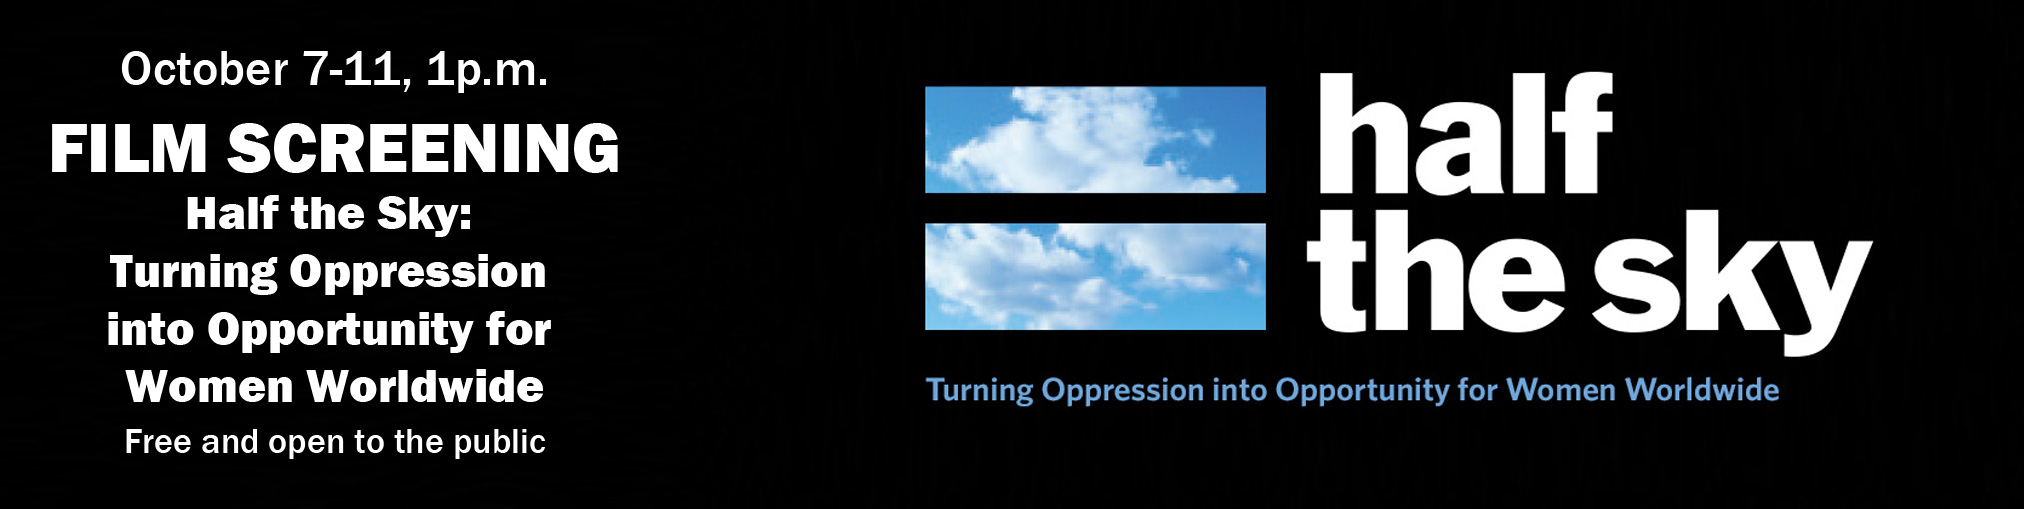 October 7-11, 1p.m. FILM SCREENING Half the Sky:  Turning Oppression  into Opportunity for  Women Worldwide  Free and open to the public